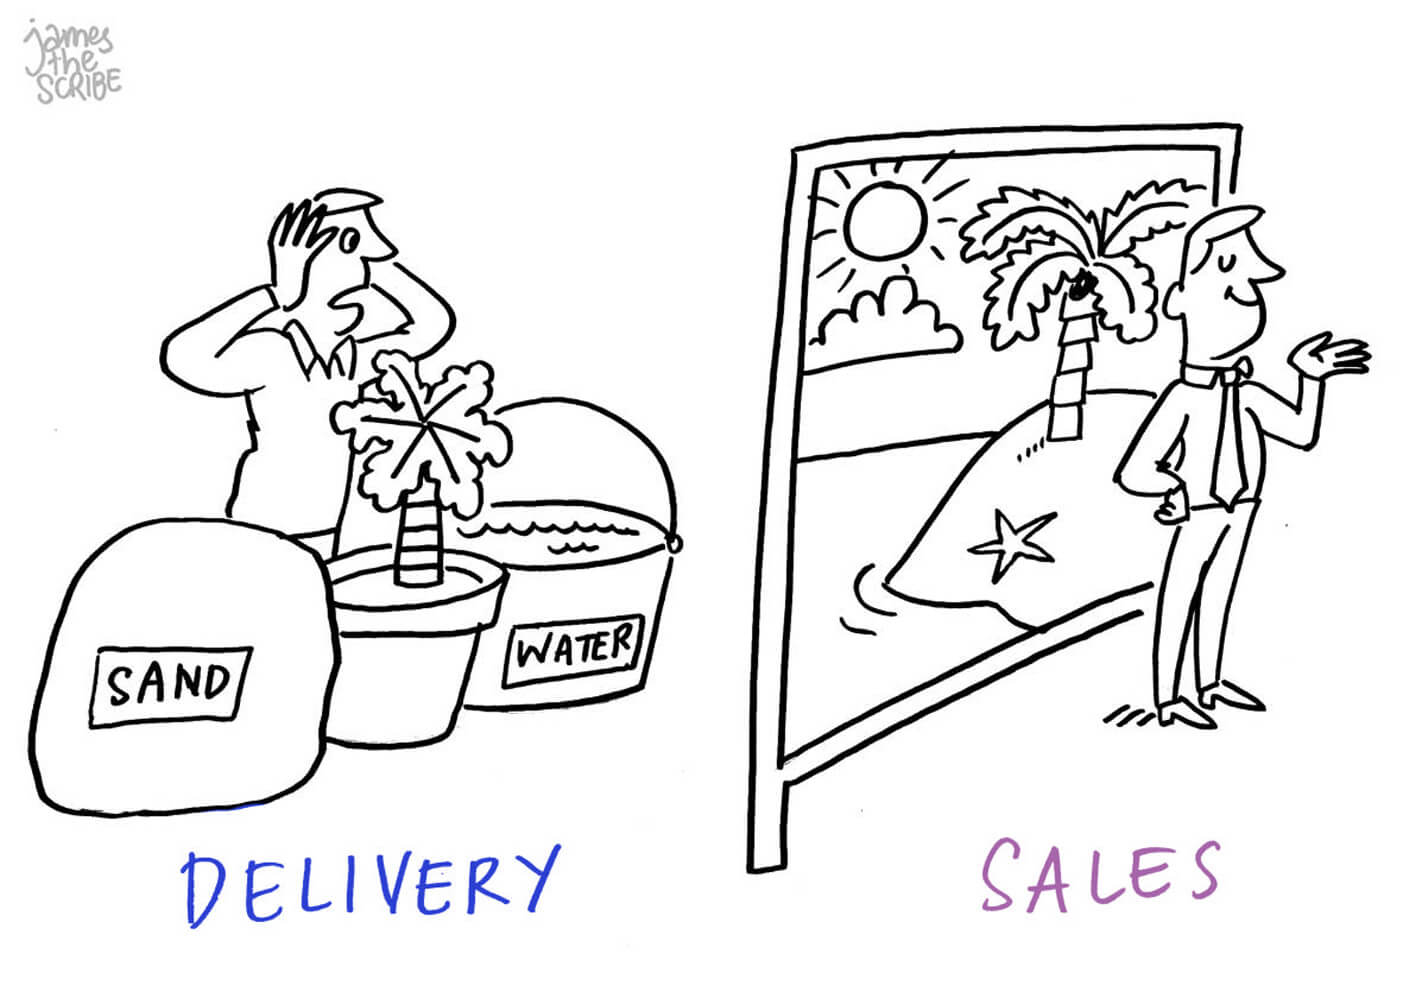 22_delivery-and-sales.jpg